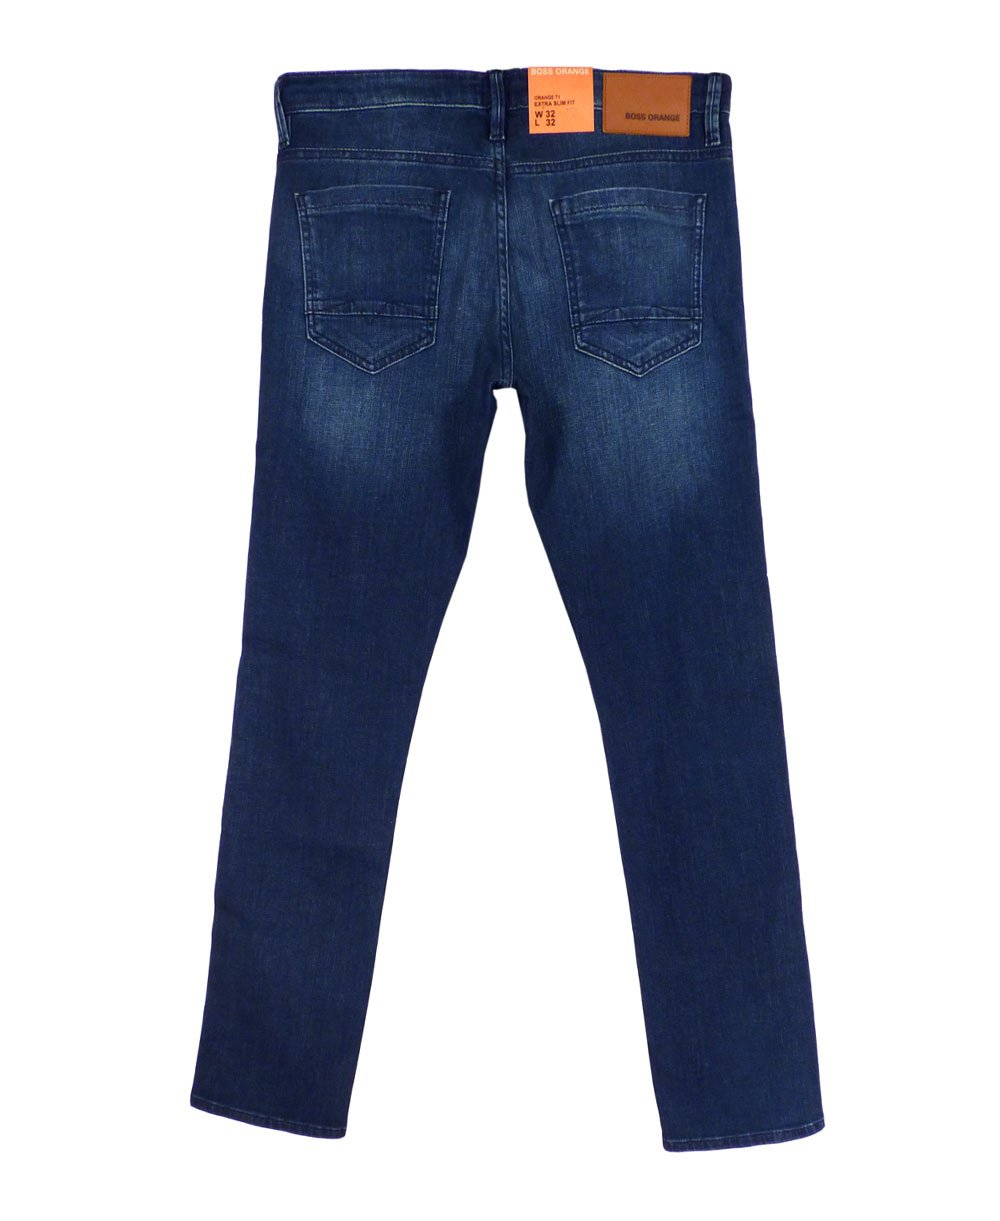 hugo boss 39 orange 71 39 extra slim fit jeans in blue hugo boss from jonathan trumbull uk. Black Bedroom Furniture Sets. Home Design Ideas